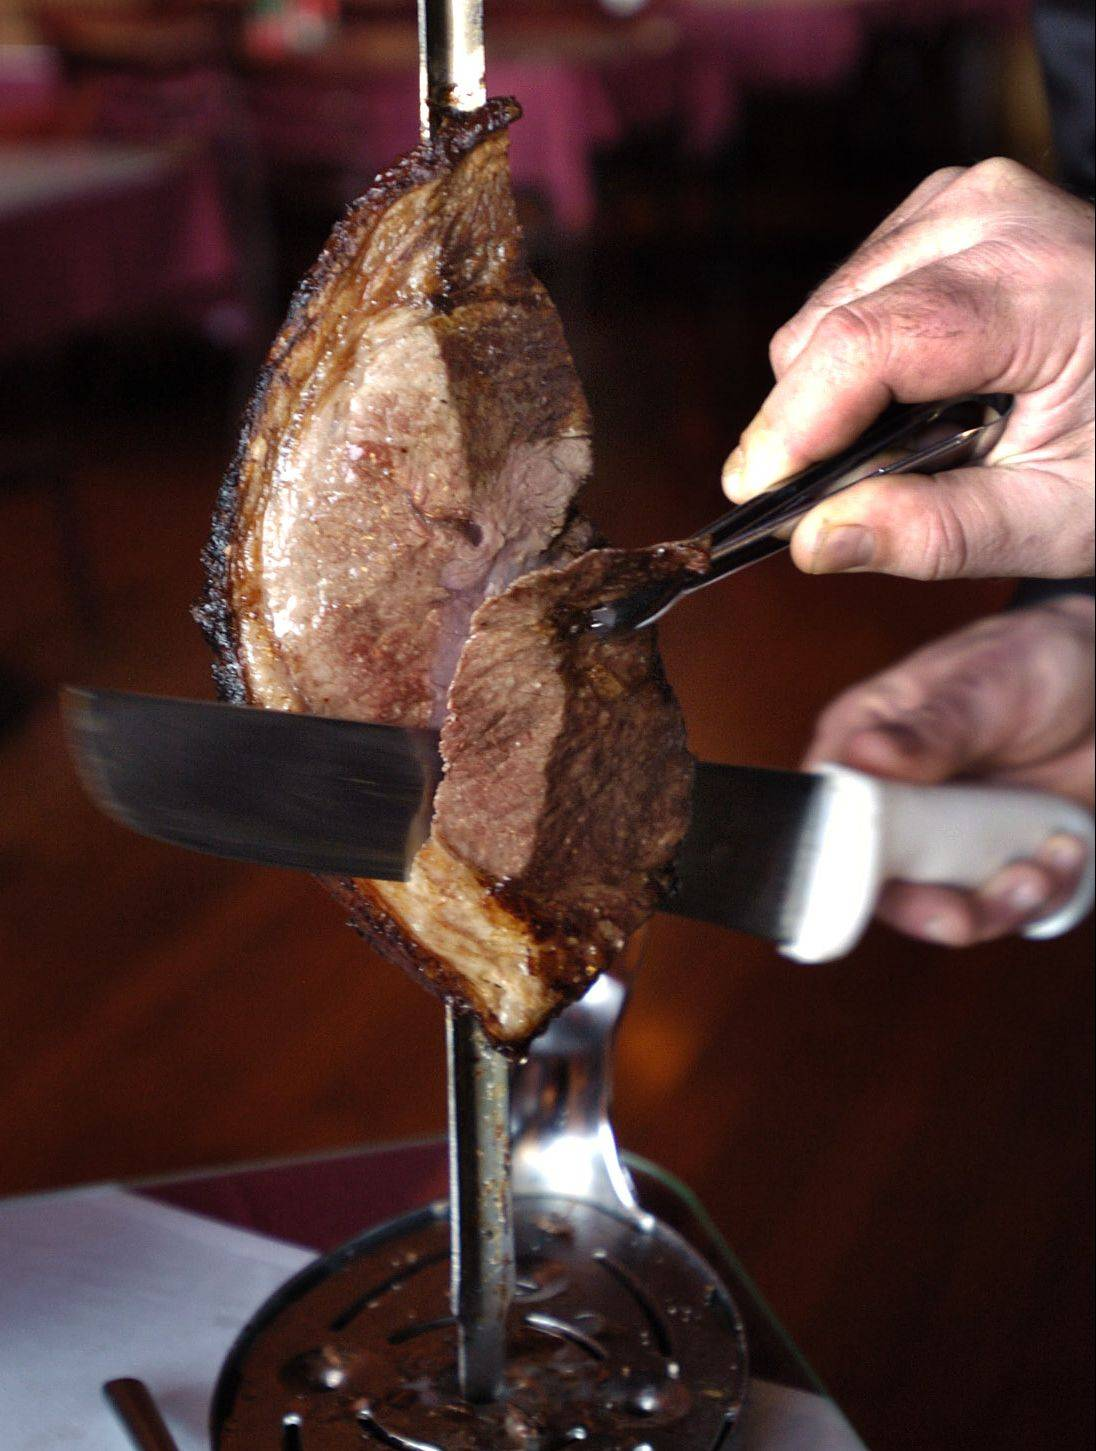 Gauchos slice top sirloin, or alcatra, and other meats tableside at Sake & Samba Brazilian Churrascaria.